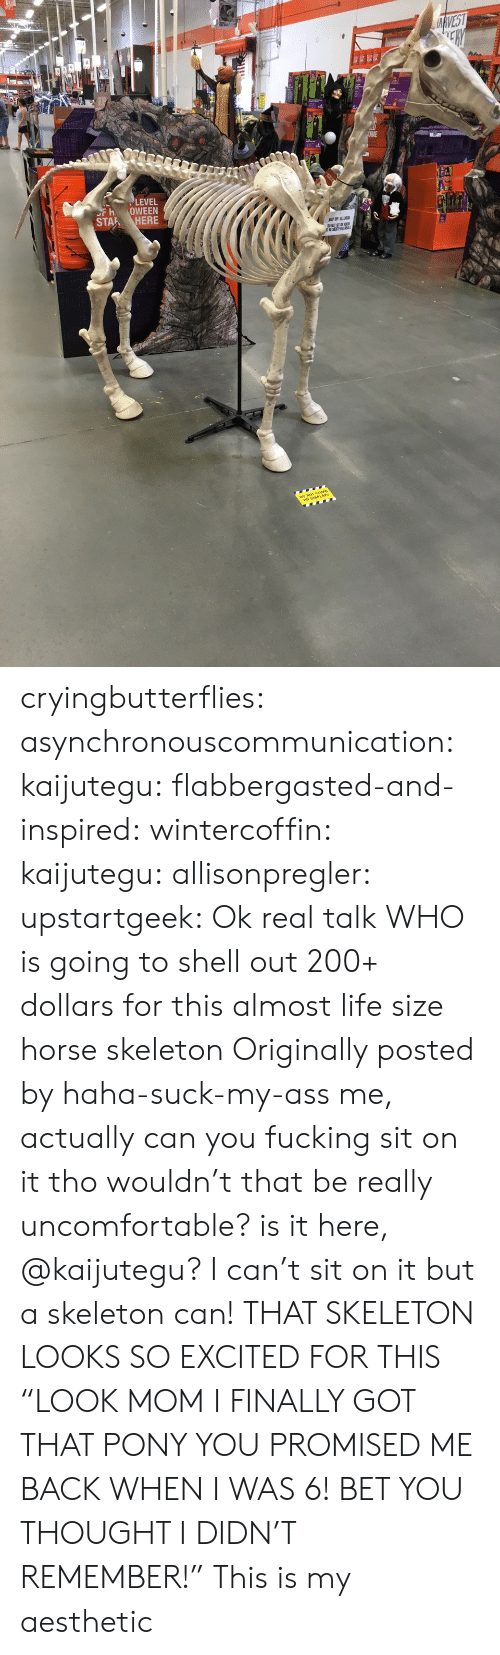 """Ass, Bailey Jay, and Fucking: ce  LEVEL  FH OWEEN  STAR ? HERE cryingbutterflies:  asynchronouscommunication:  kaijutegu:  flabbergasted-and-inspired:  wintercoffin:  kaijutegu:  allisonpregler:  upstartgeek:  Ok real talk WHO is going to shell out 200+ dollars for this almost life size horse skeleton  Originally posted by haha-suck-my-ass  me, actually  can you fucking sit on it tho  wouldn't that be really uncomfortable? is it here, @kaijutegu?  I can't sit on it but a skeleton can!  THAT SKELETON LOOKS SO EXCITED FOR THIS  """"LOOK MOM I FINALLY GOT THAT PONY YOU PROMISED ME BACK WHEN I WAS 6! BET YOU THOUGHT I DIDN'T REMEMBER!""""   This is my aesthetic"""